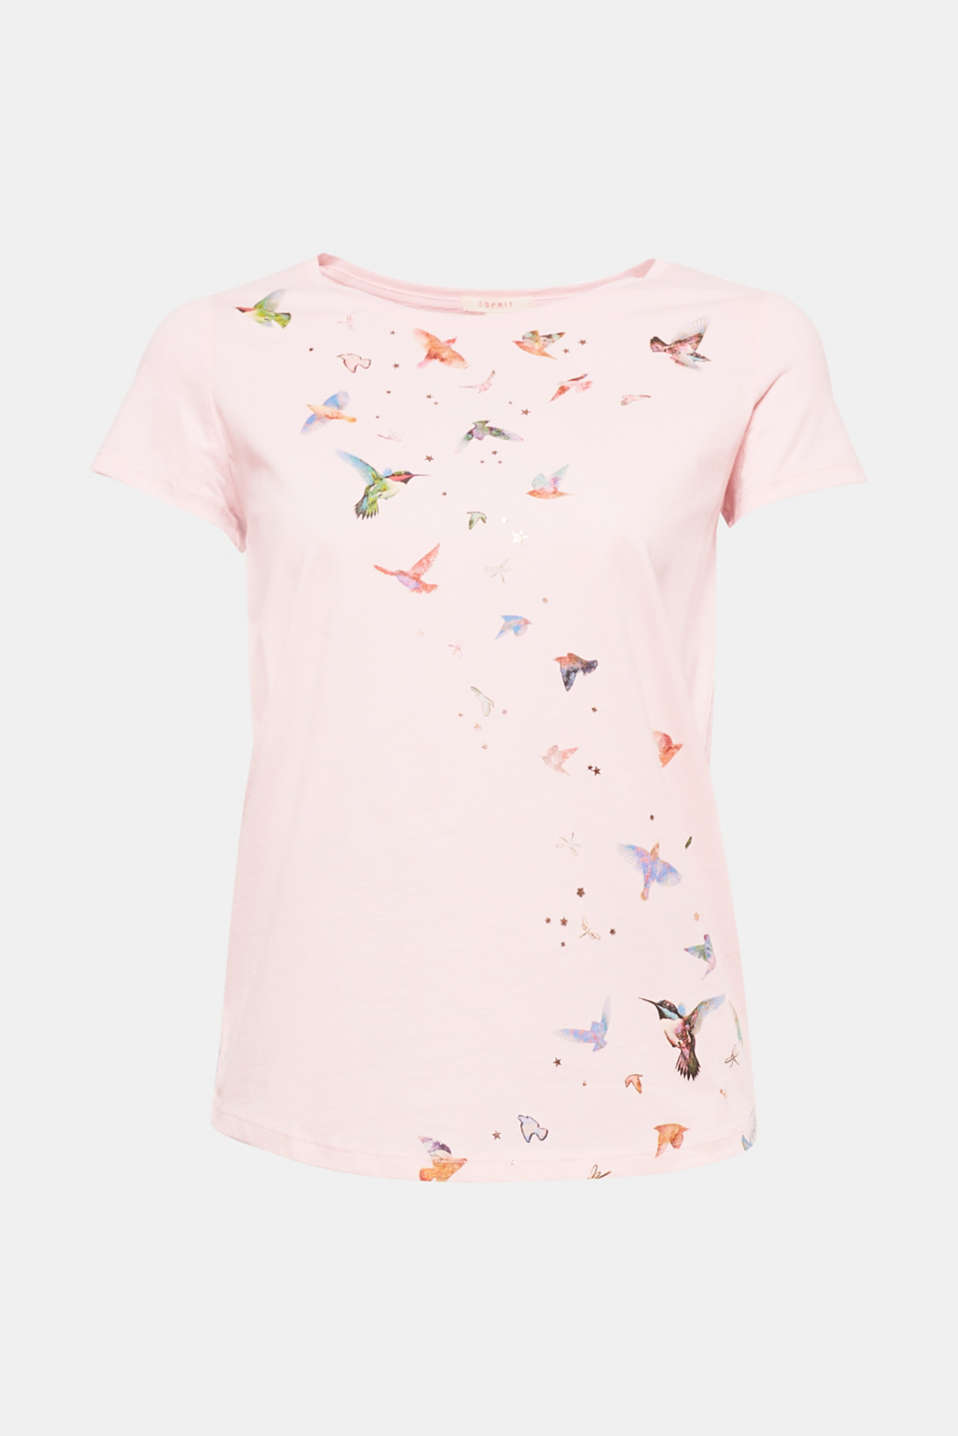 Let`s fly away! The combination of the bird print and glitter stars makes this T-shirt a head-turner.